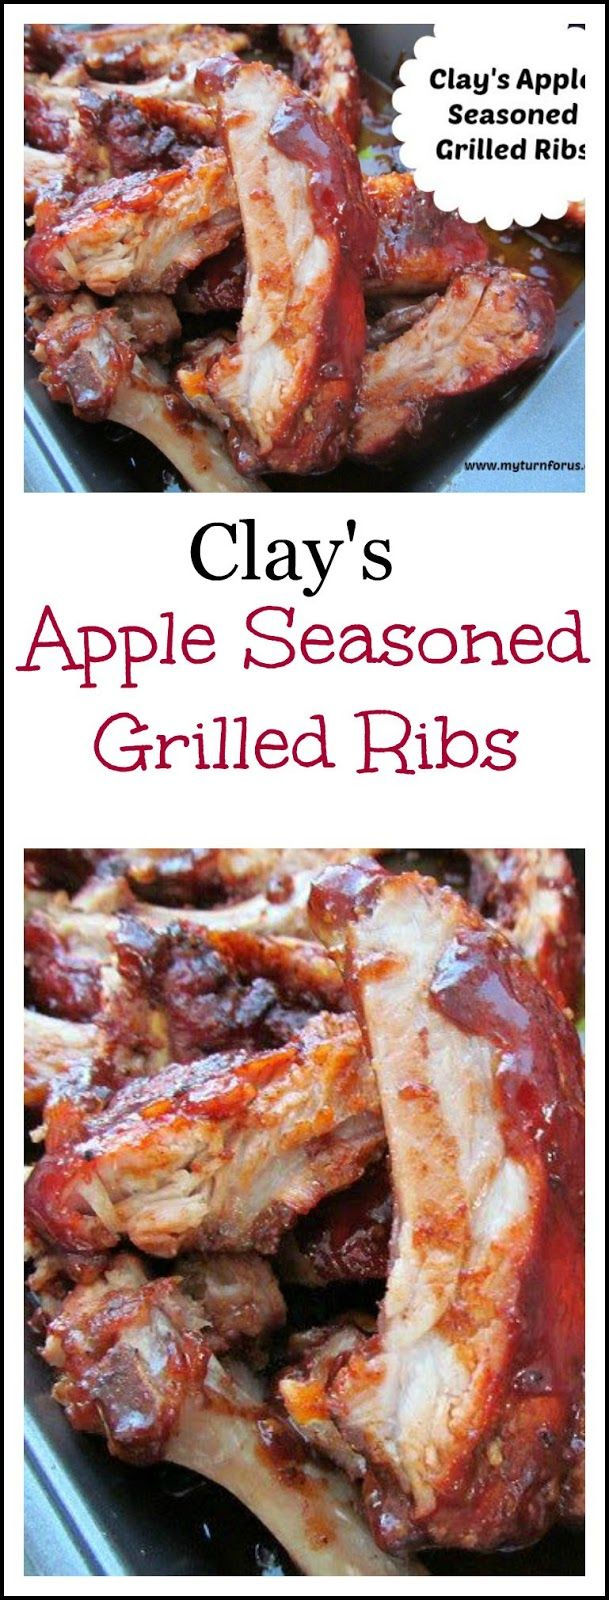 Apple Seasoned Grilled Ribs loaded with sauce!  http://www.myturnforus.com/2014/05/clays-apple-seasoned-grilled-ribs.html